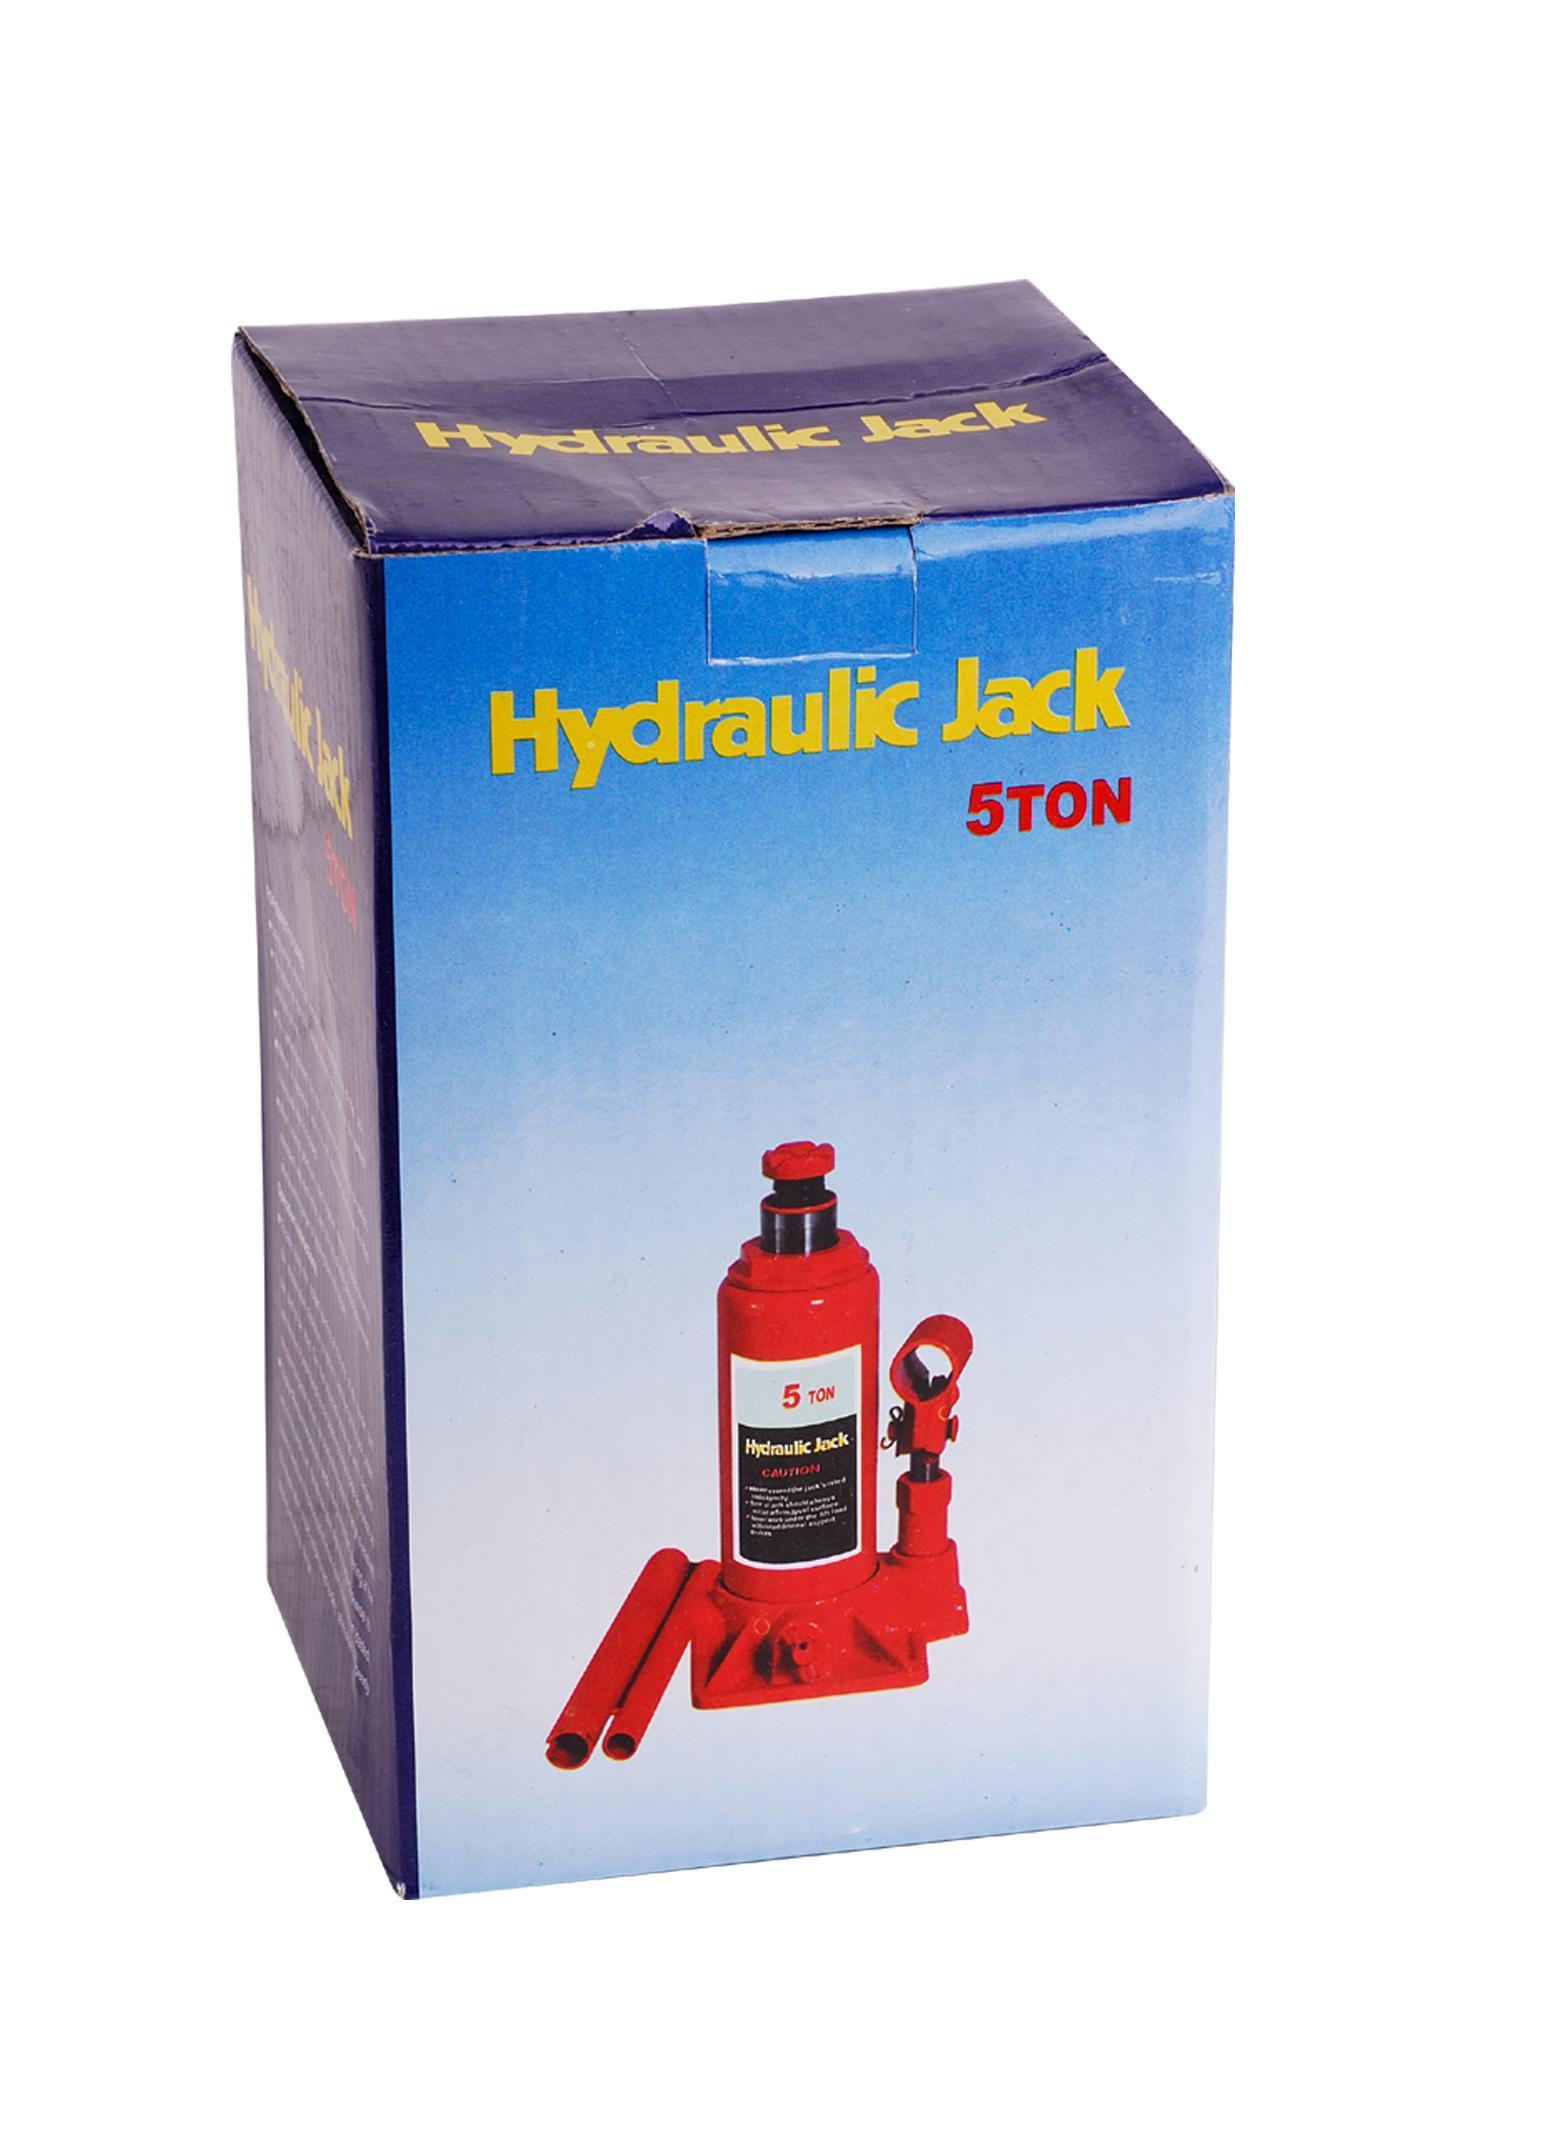 6t Hydraulic Bottle Jack, Jack, Air Jack, Bottle Jack, Car Jack.